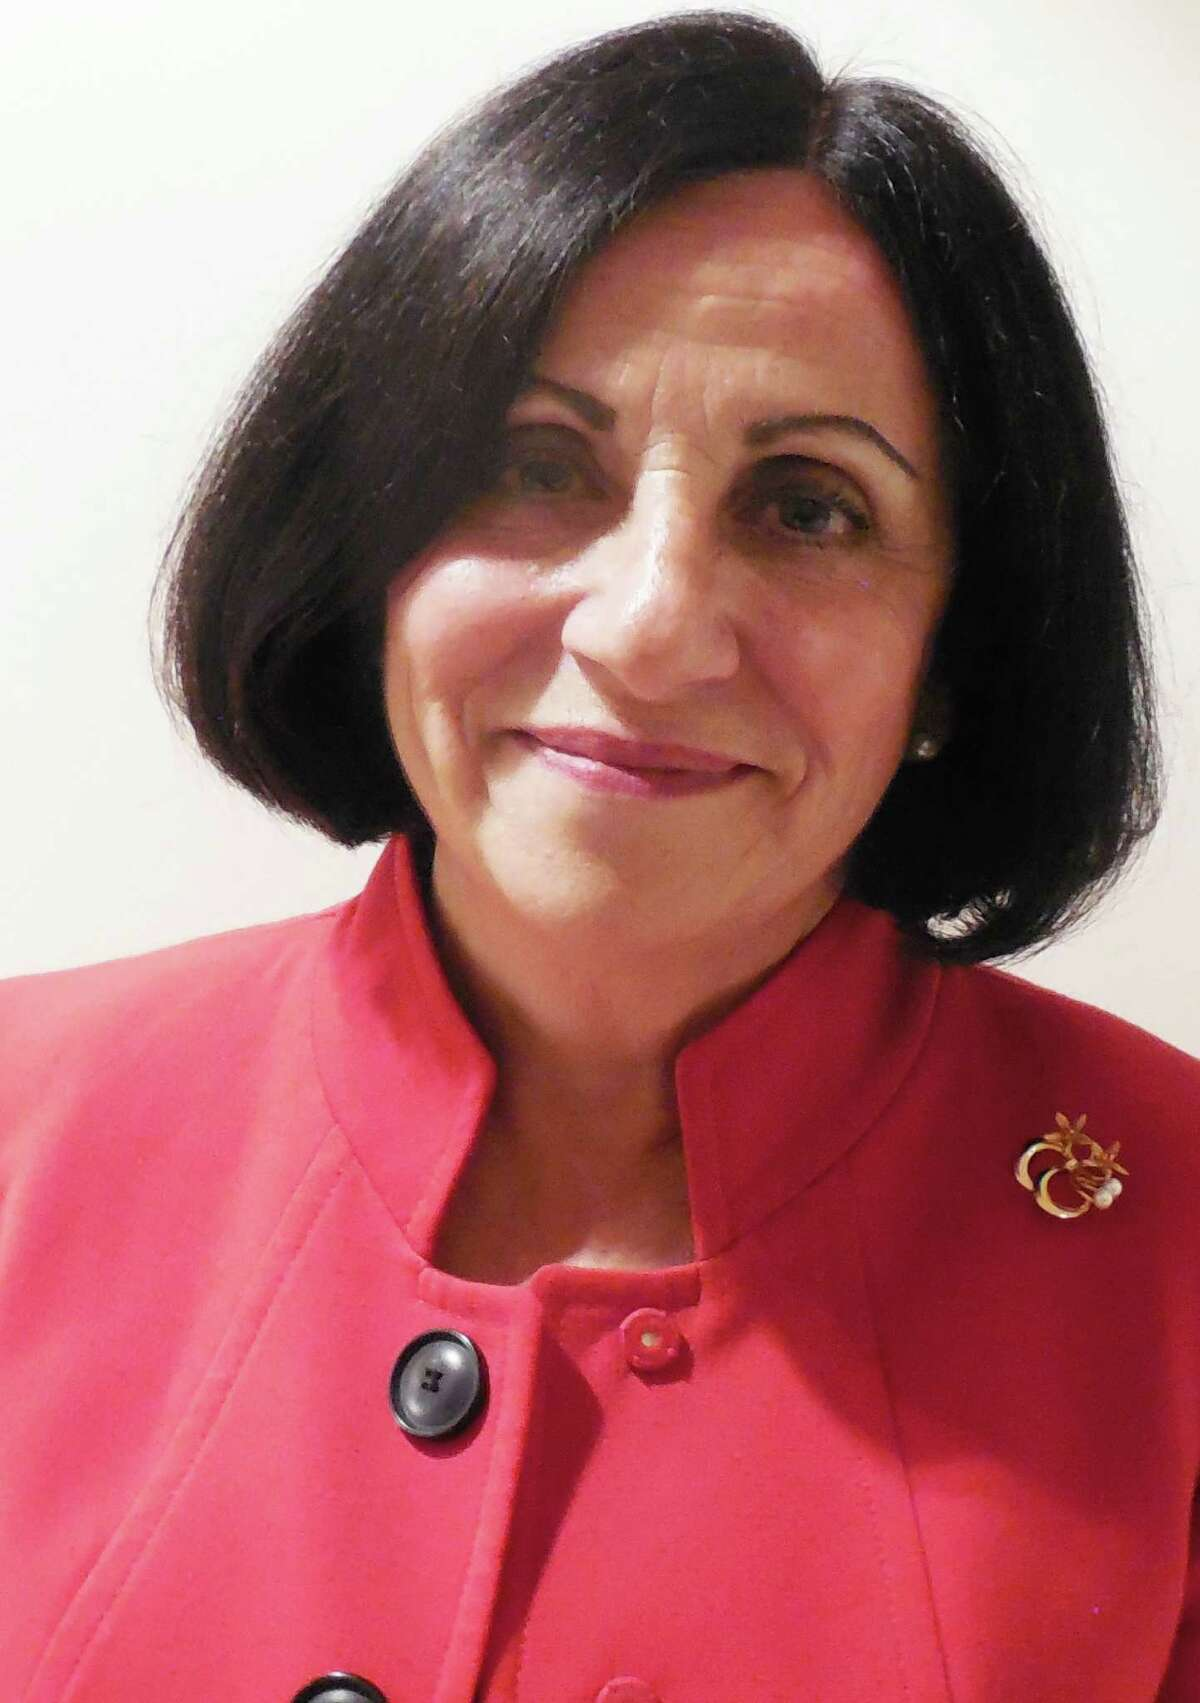 State Sen. Toni Boucher, R-26, is running for reelection.